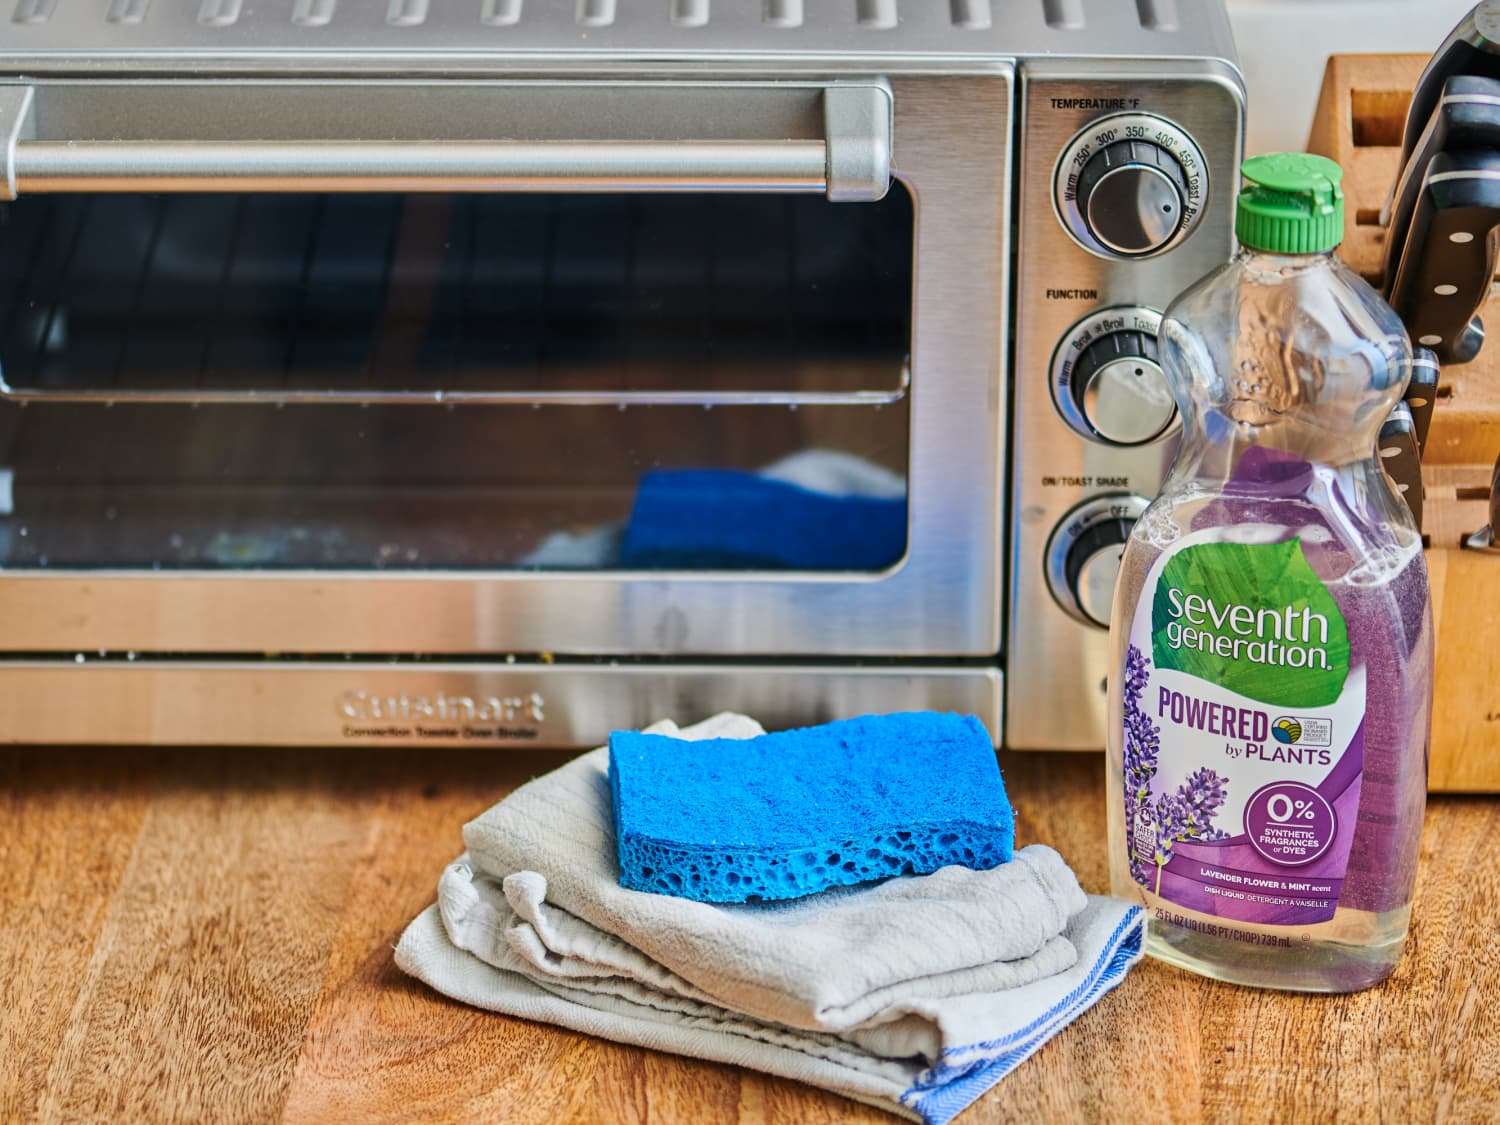 How to Clean a Toaster Oven, Step by Step with Photos | Apartment Therapy